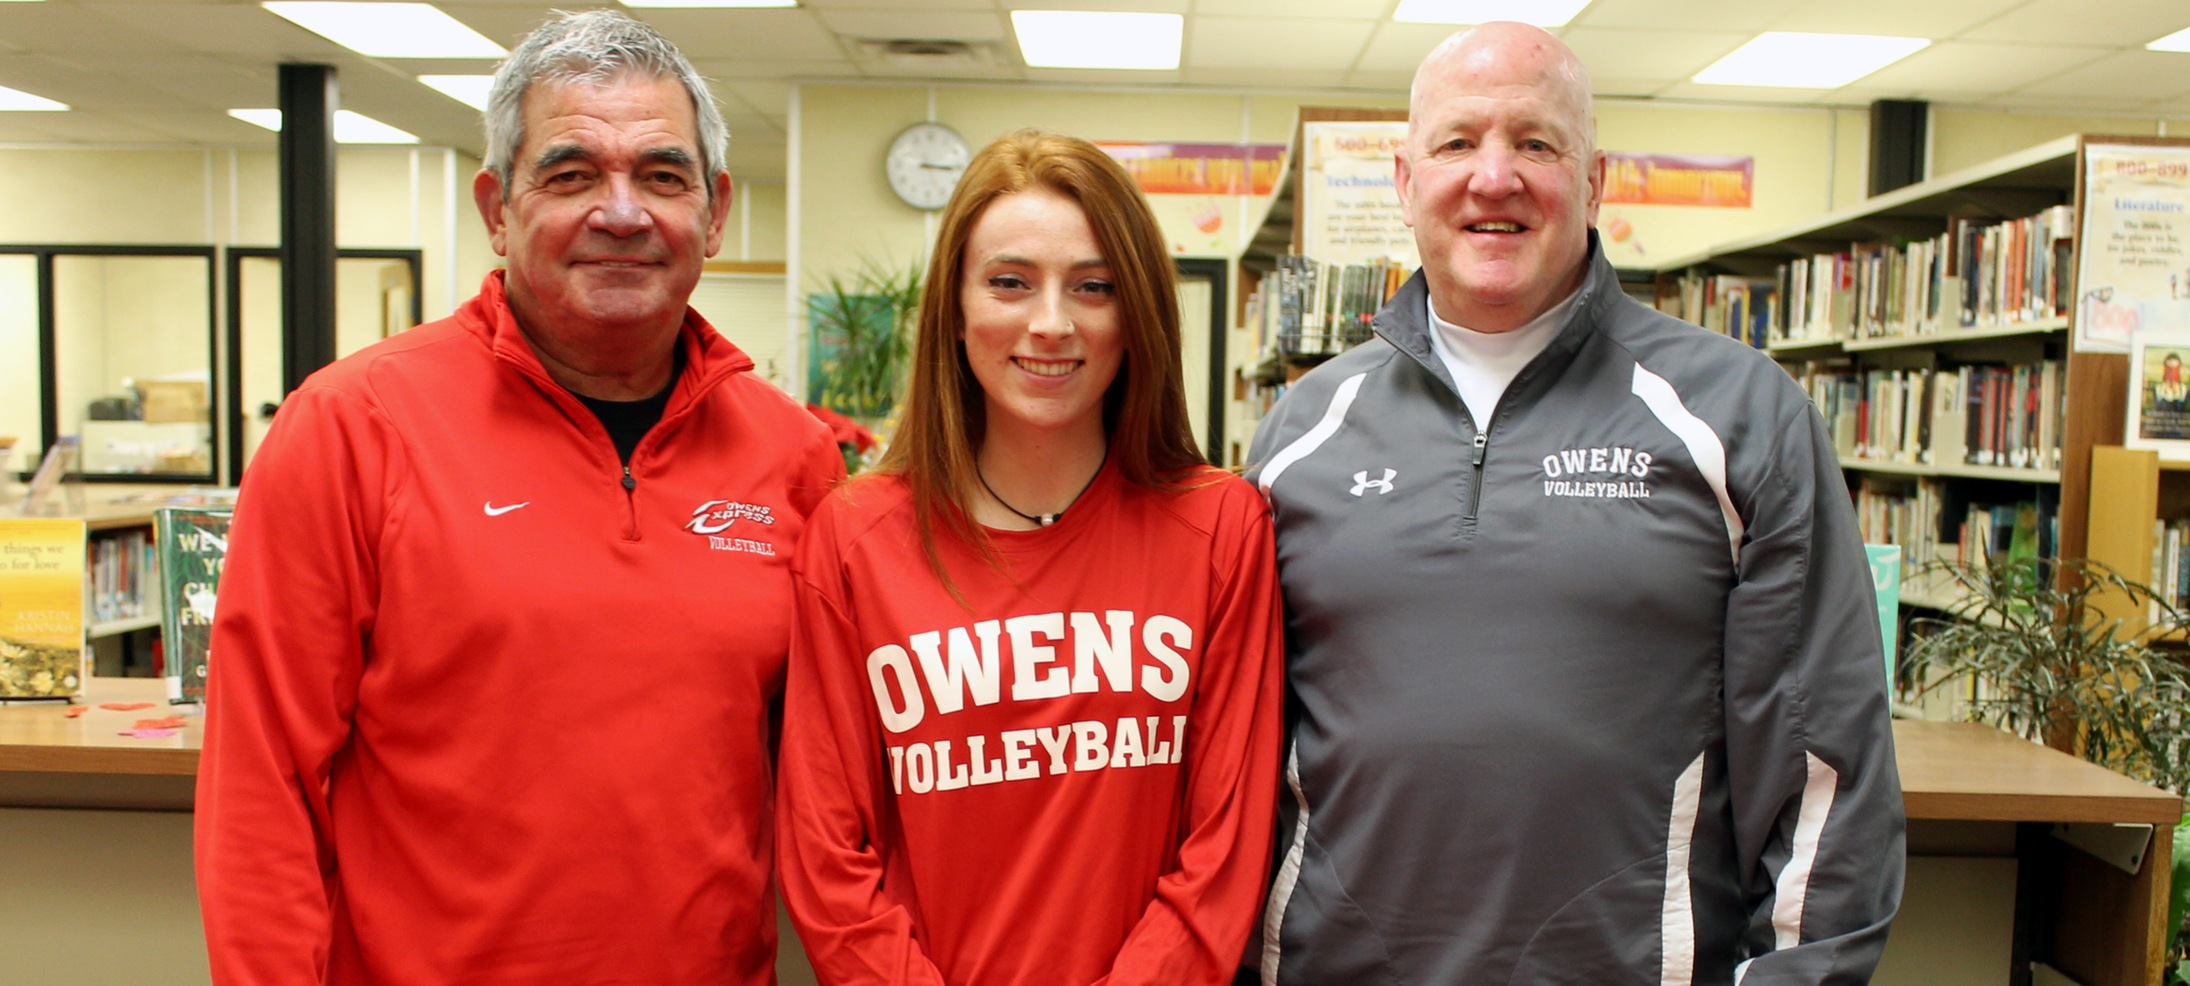 Kennedy Ames is pictured with Owens volleyball head coach Sonny Lewis (L) and assistant coach Denny Caldwell (R). Photo by Nicholas Huenefeld/Owens Sports Information